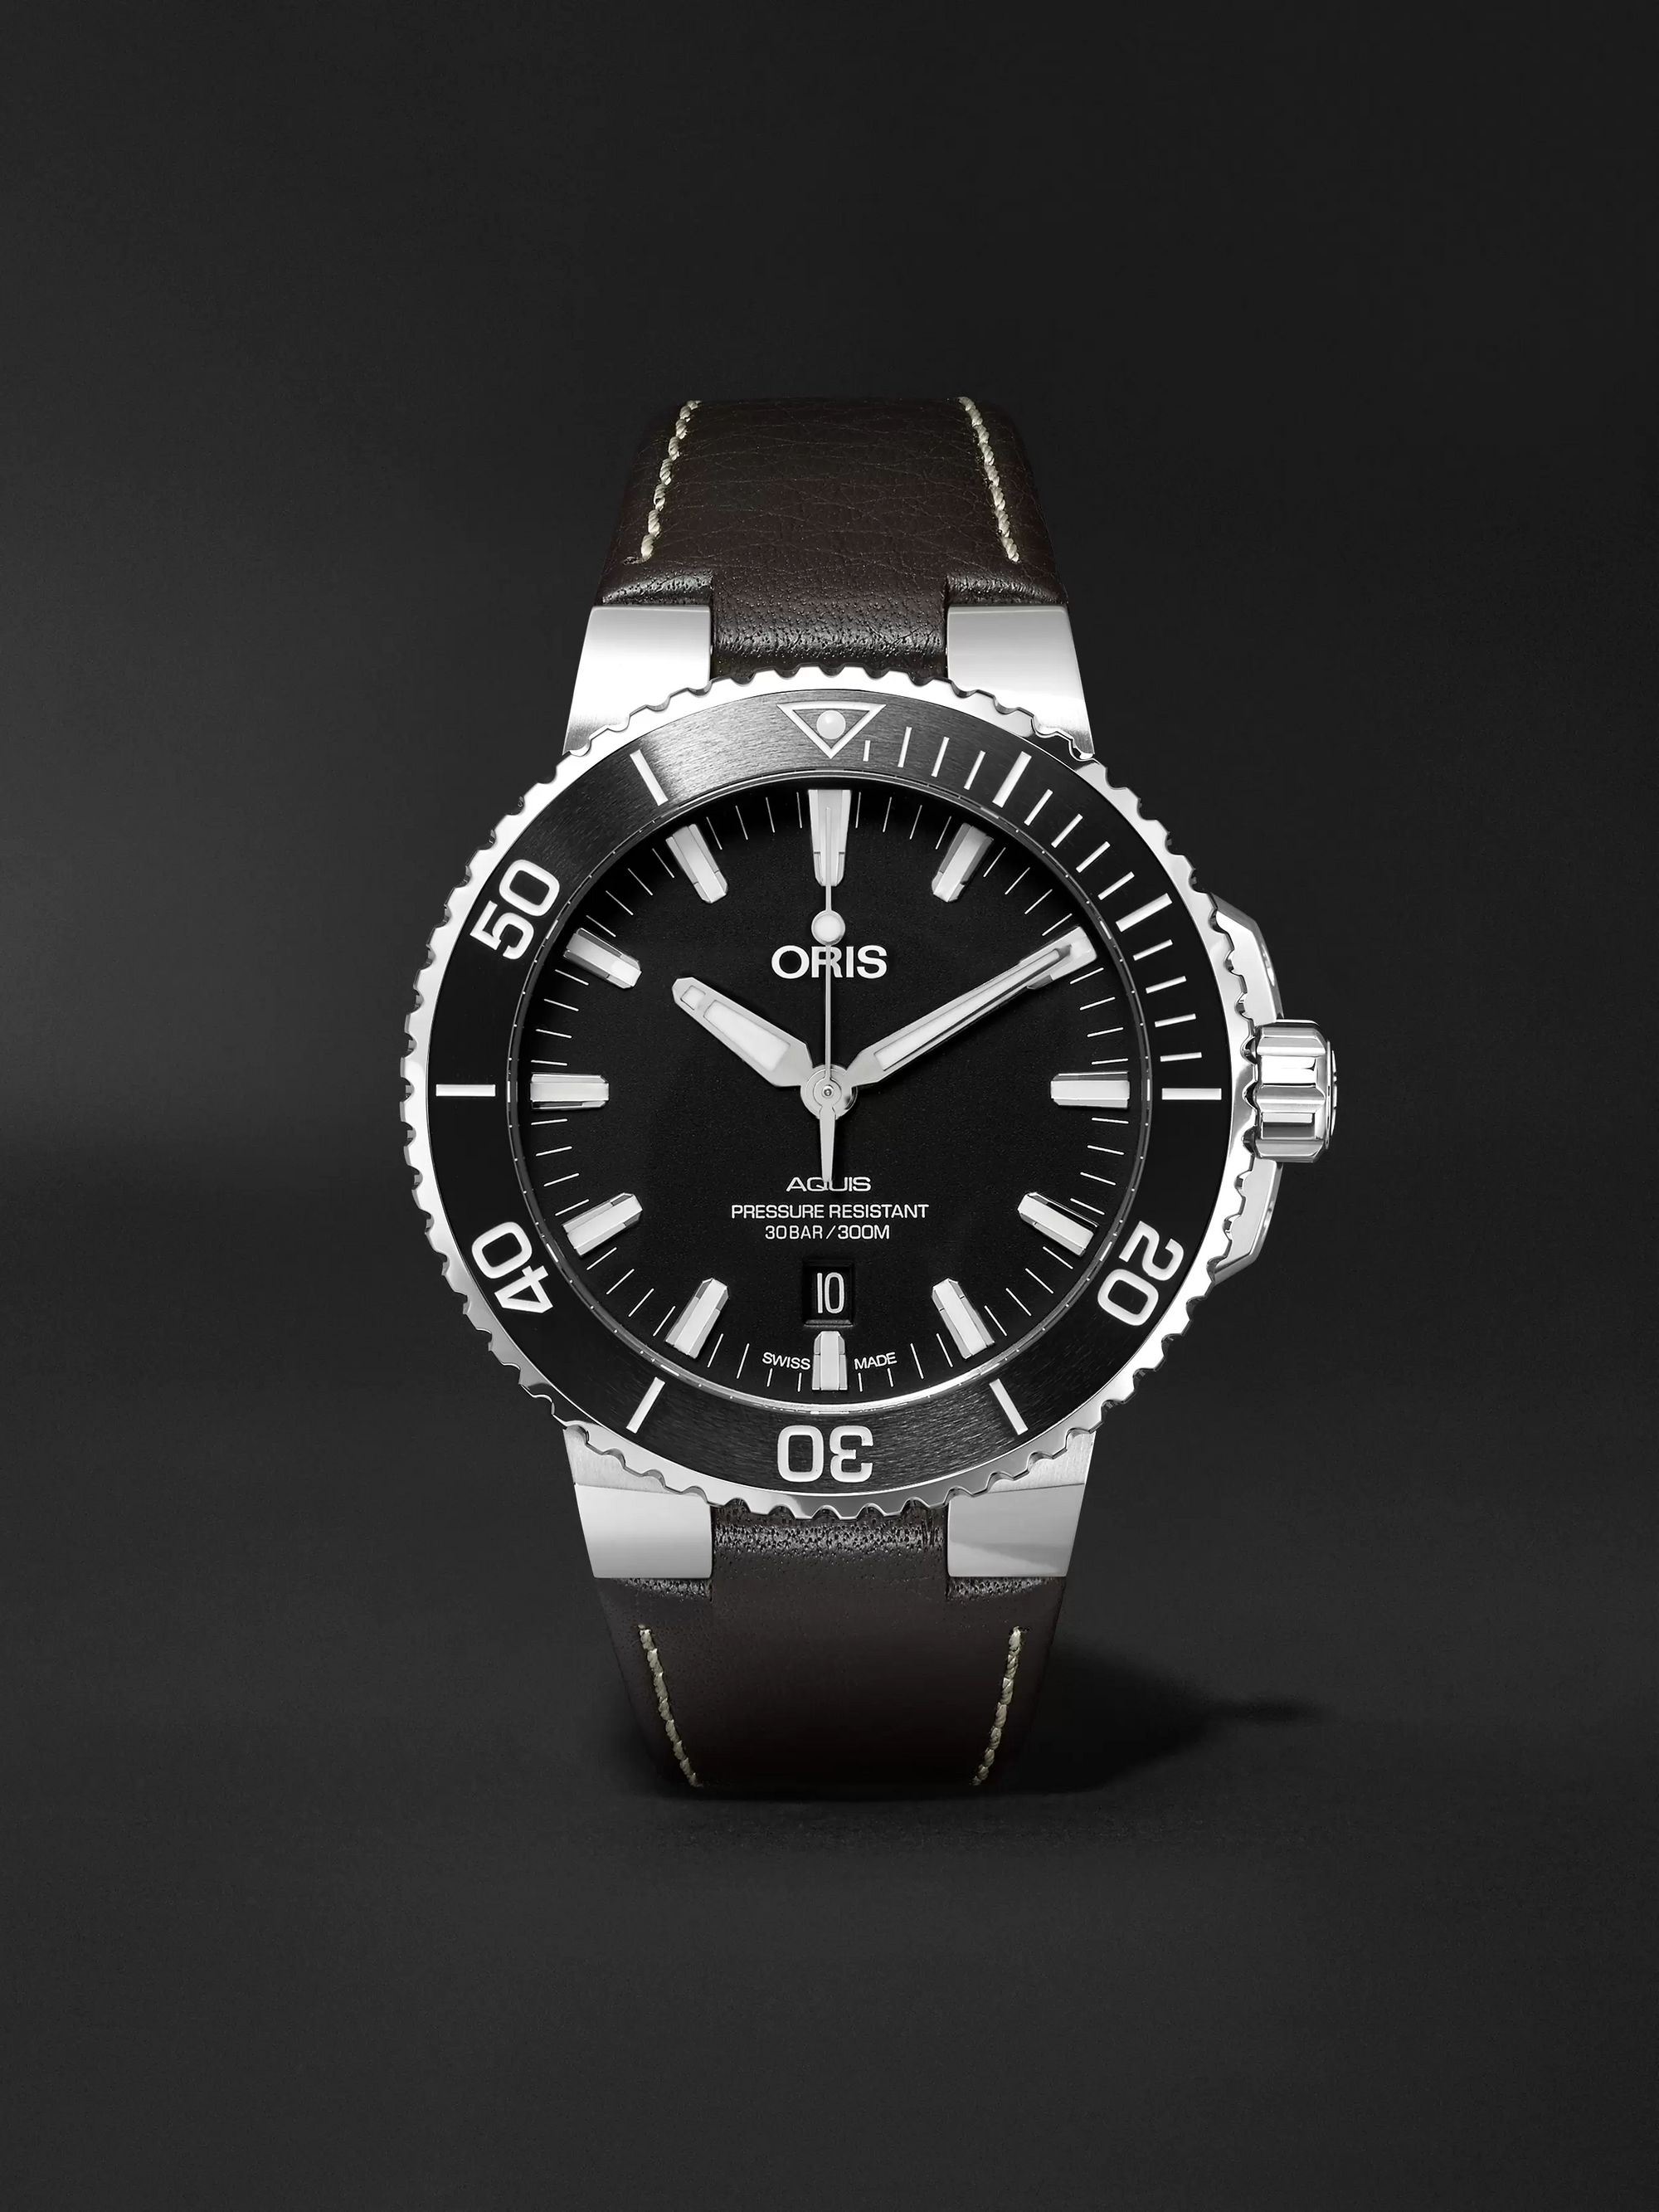 Oris Aquis 43mm Stainless Steel and Leather Watch, Ref. No. 01 733 7730 4154-07 5 24 10EB